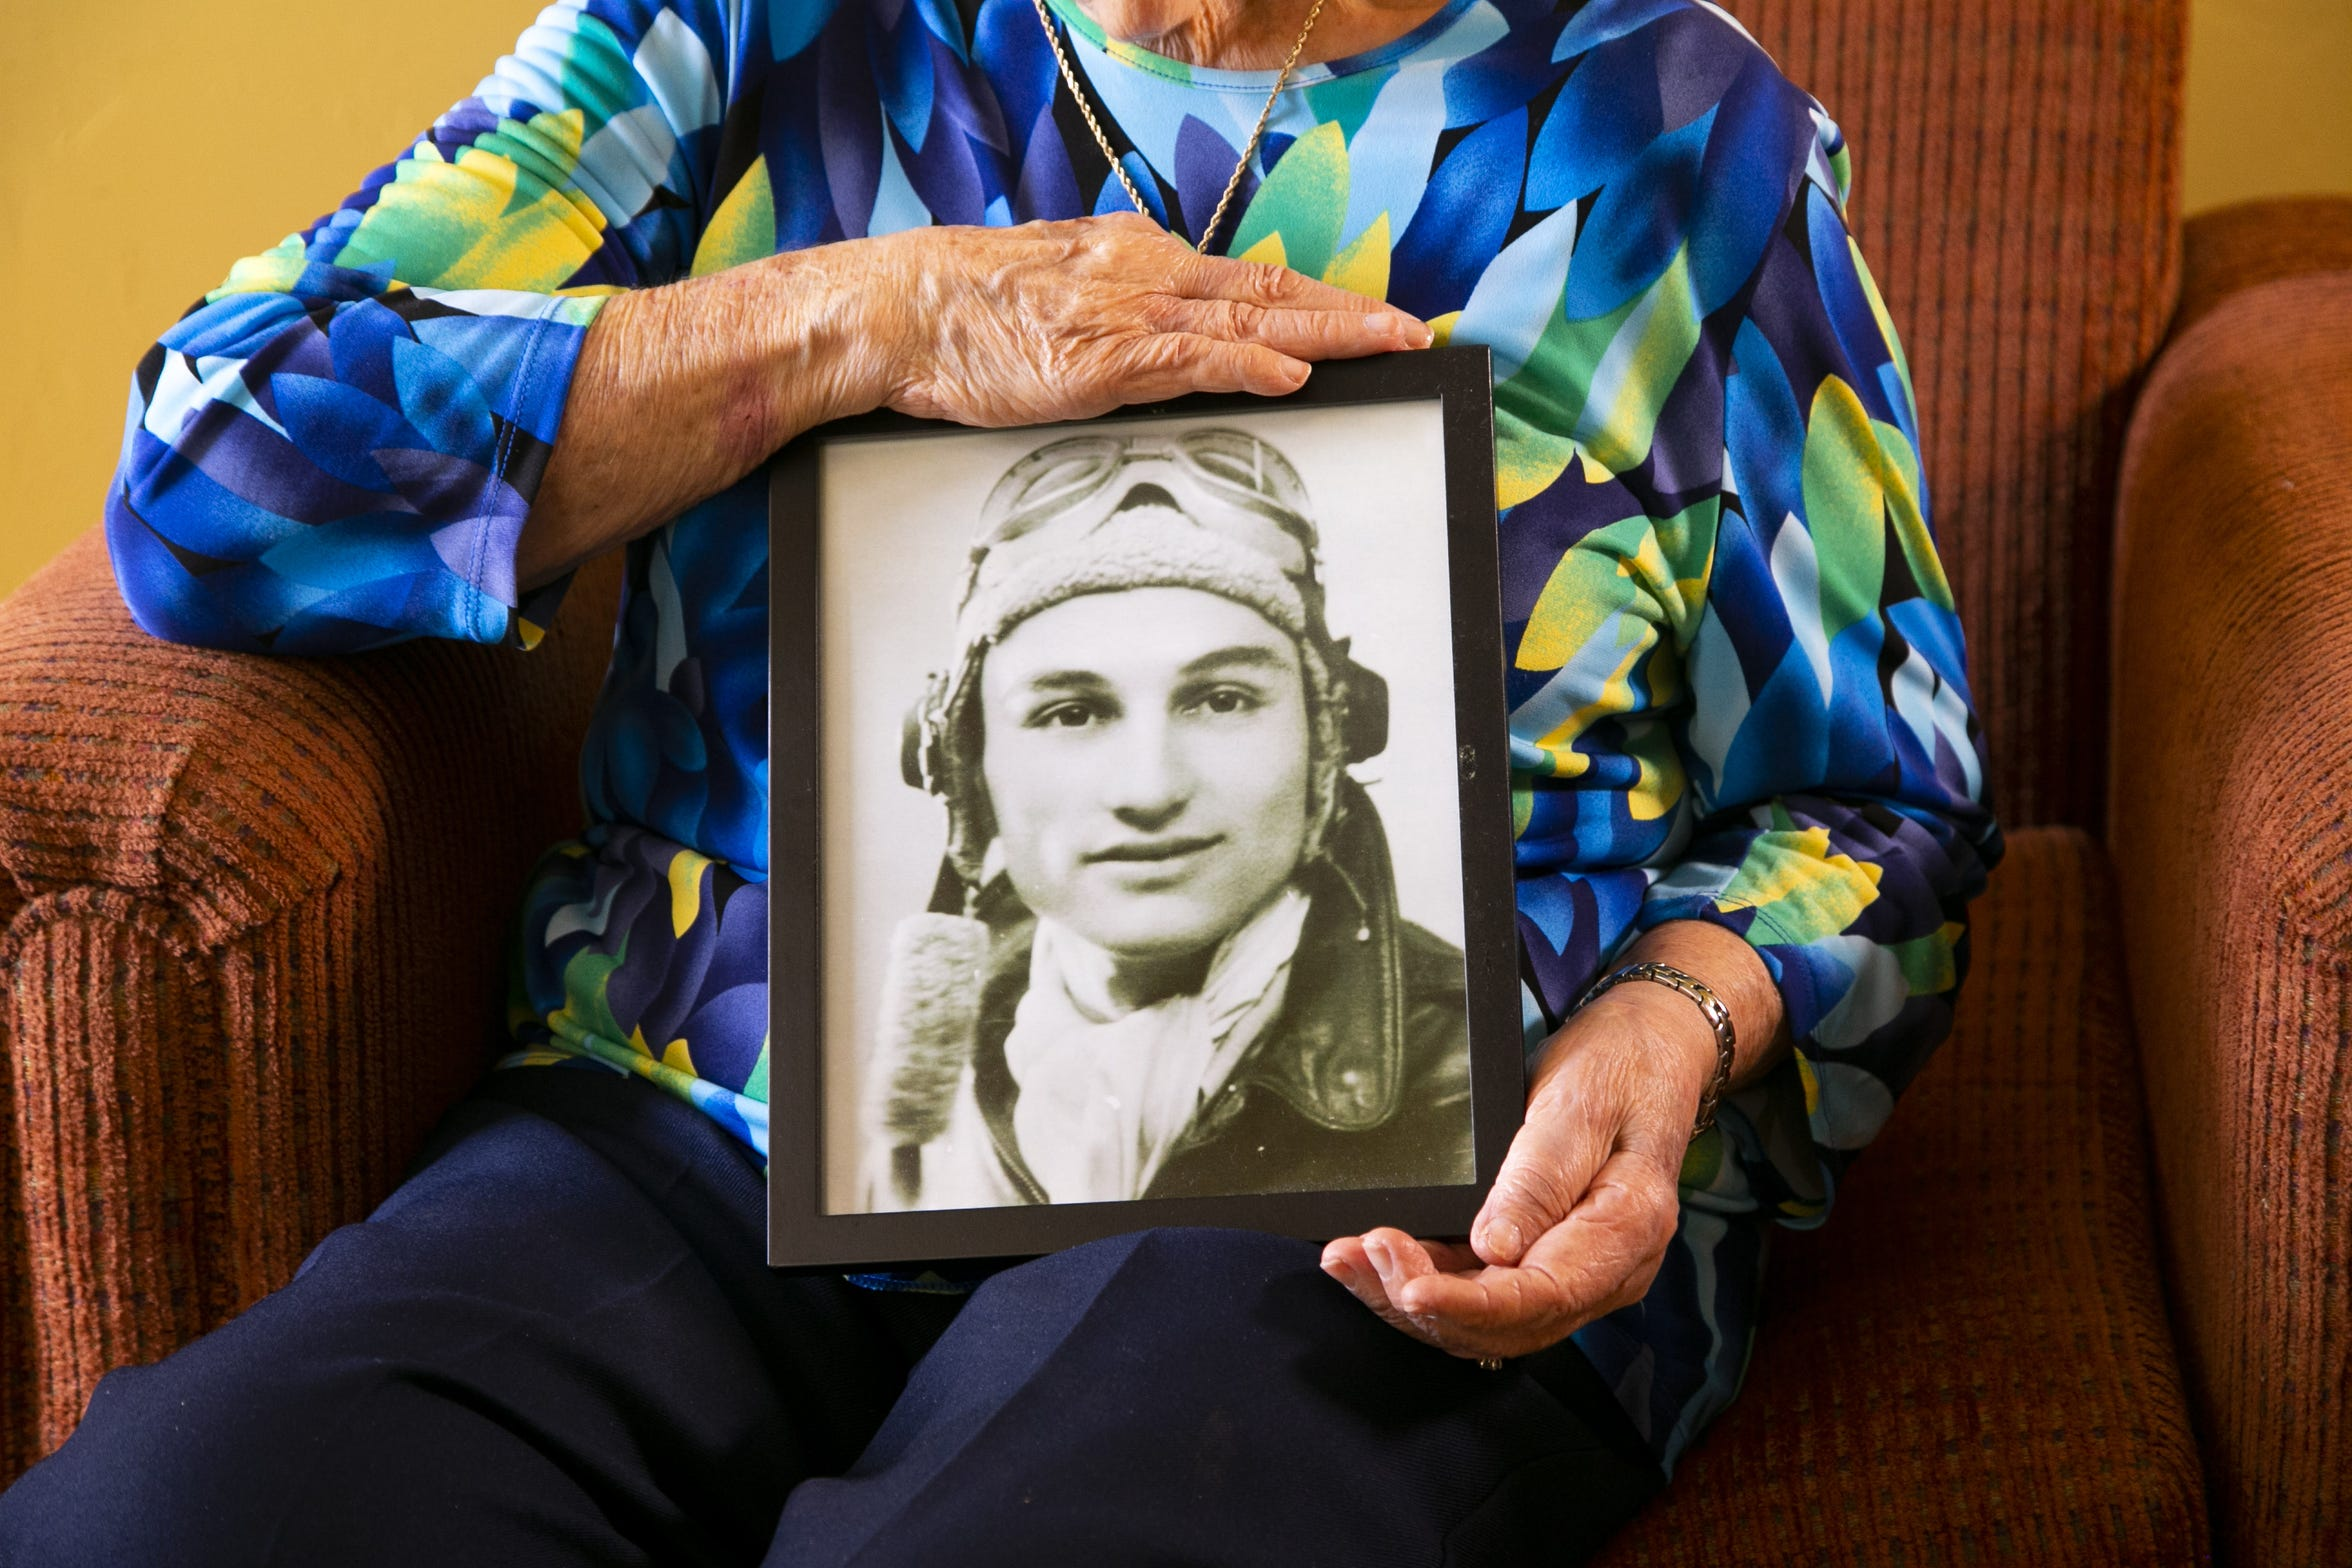 Jovita Campos holds a portrait of her husband, Airman Joe Campos from World War II in Europe in 1943, at her home in Tucson on December 5, 2018. After World War II Campos would re-enlist. It is believed that Staff Sgt. Joe Campos, a gunner on a B-26 bomber was likely the first American killed in the Korean War when his plane went down in the Yellow Sea on June 28, 1950.